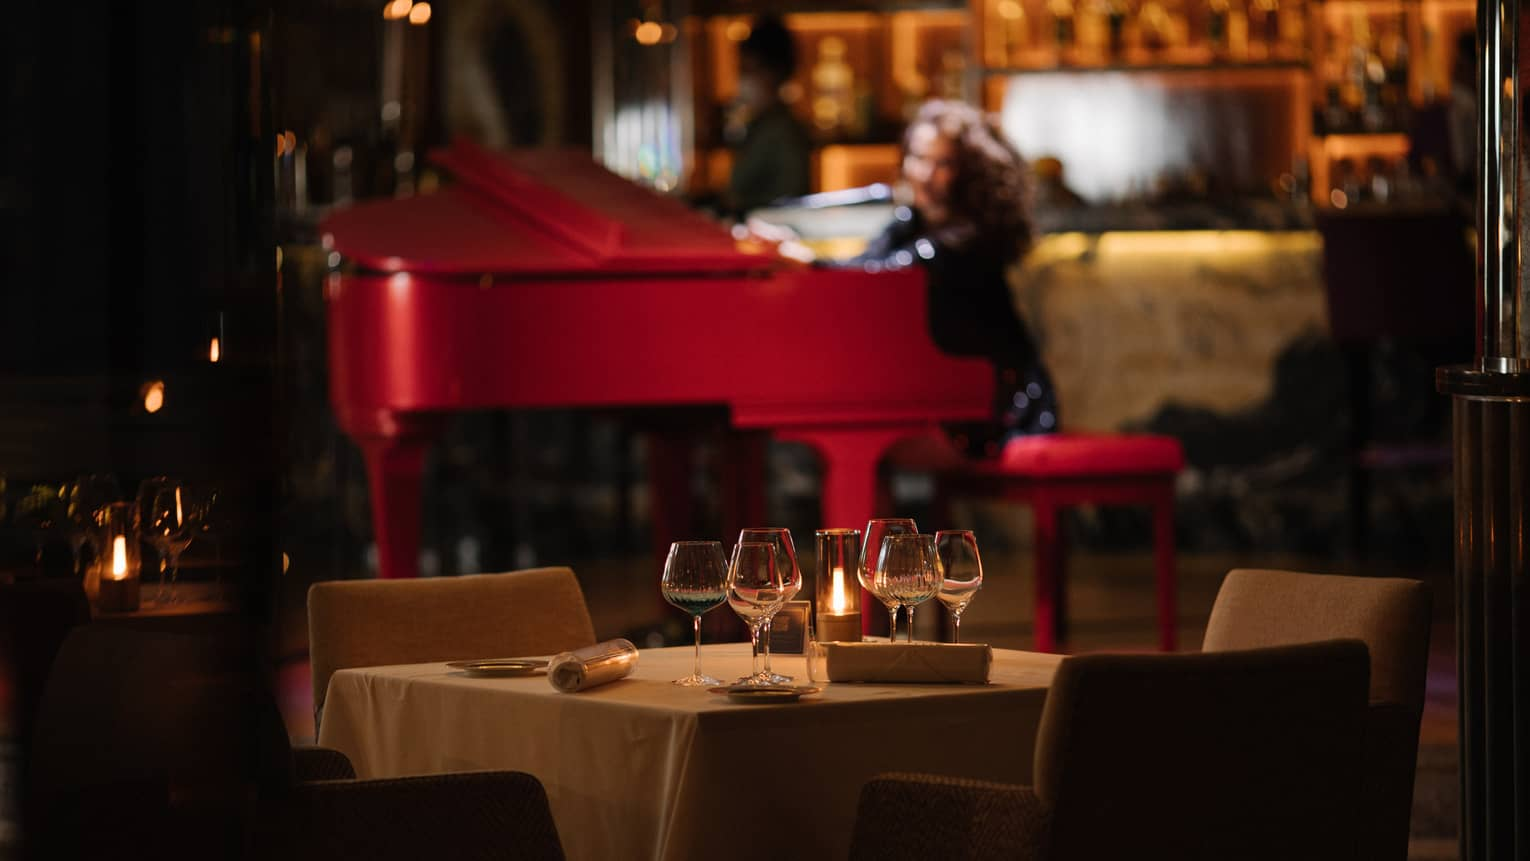 Pianist at red baby grand in backdrop of dimly lit restaurant lounge